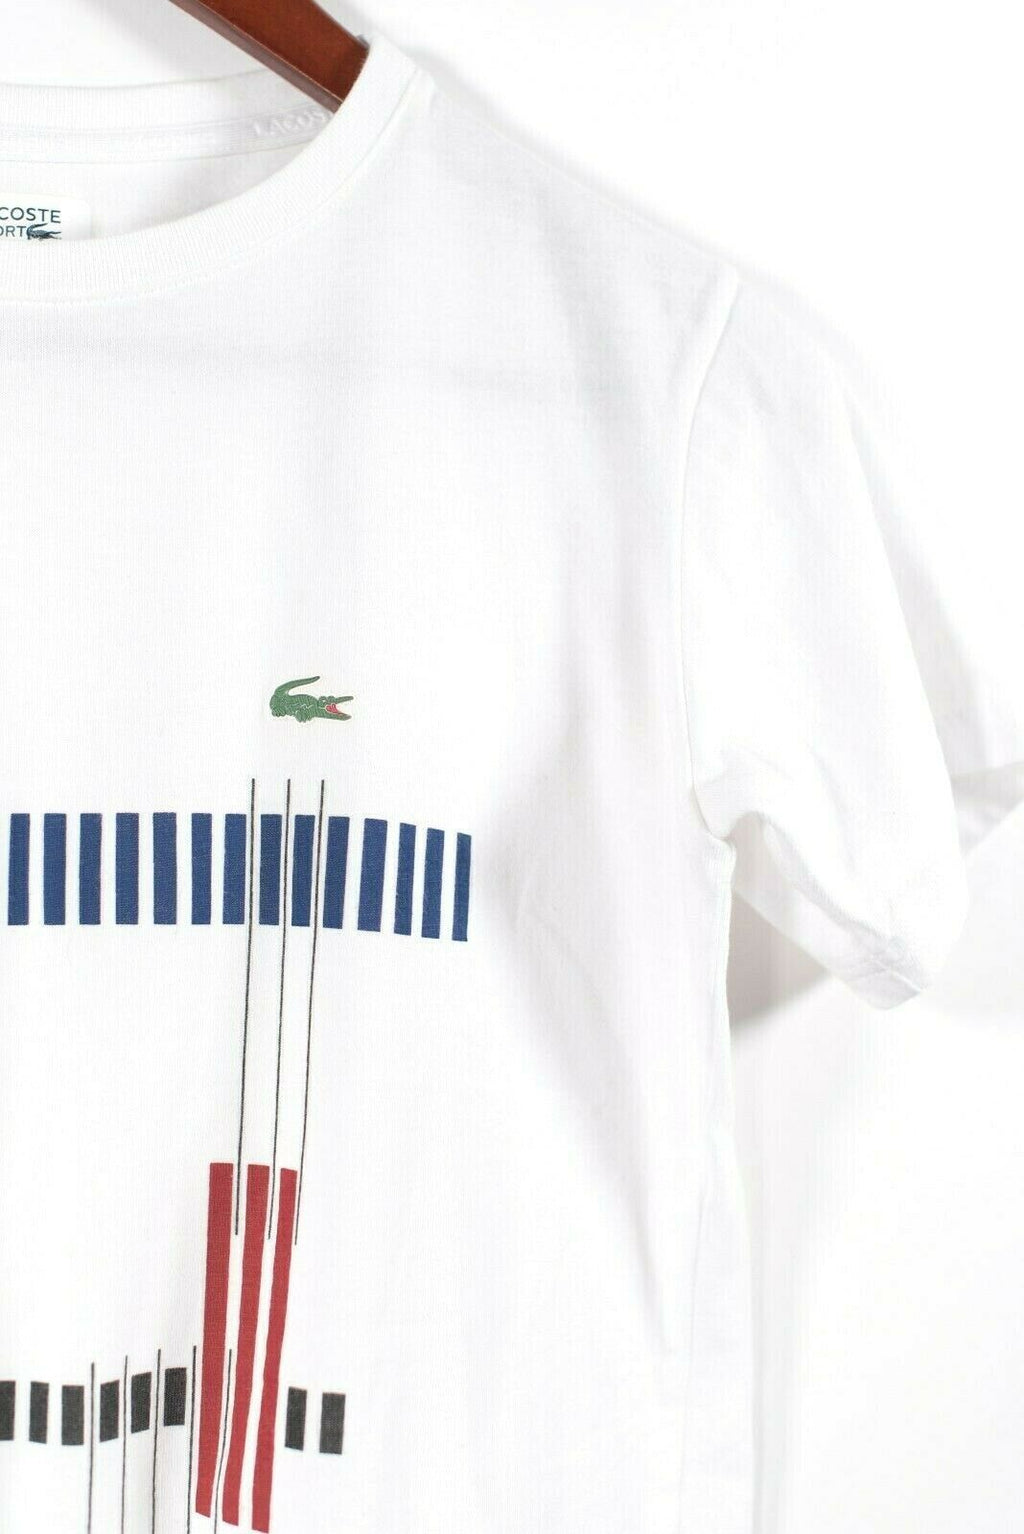 Lacoste Sport Womens White Multi Color Small T Shirt Tee Geometric Stripes Top